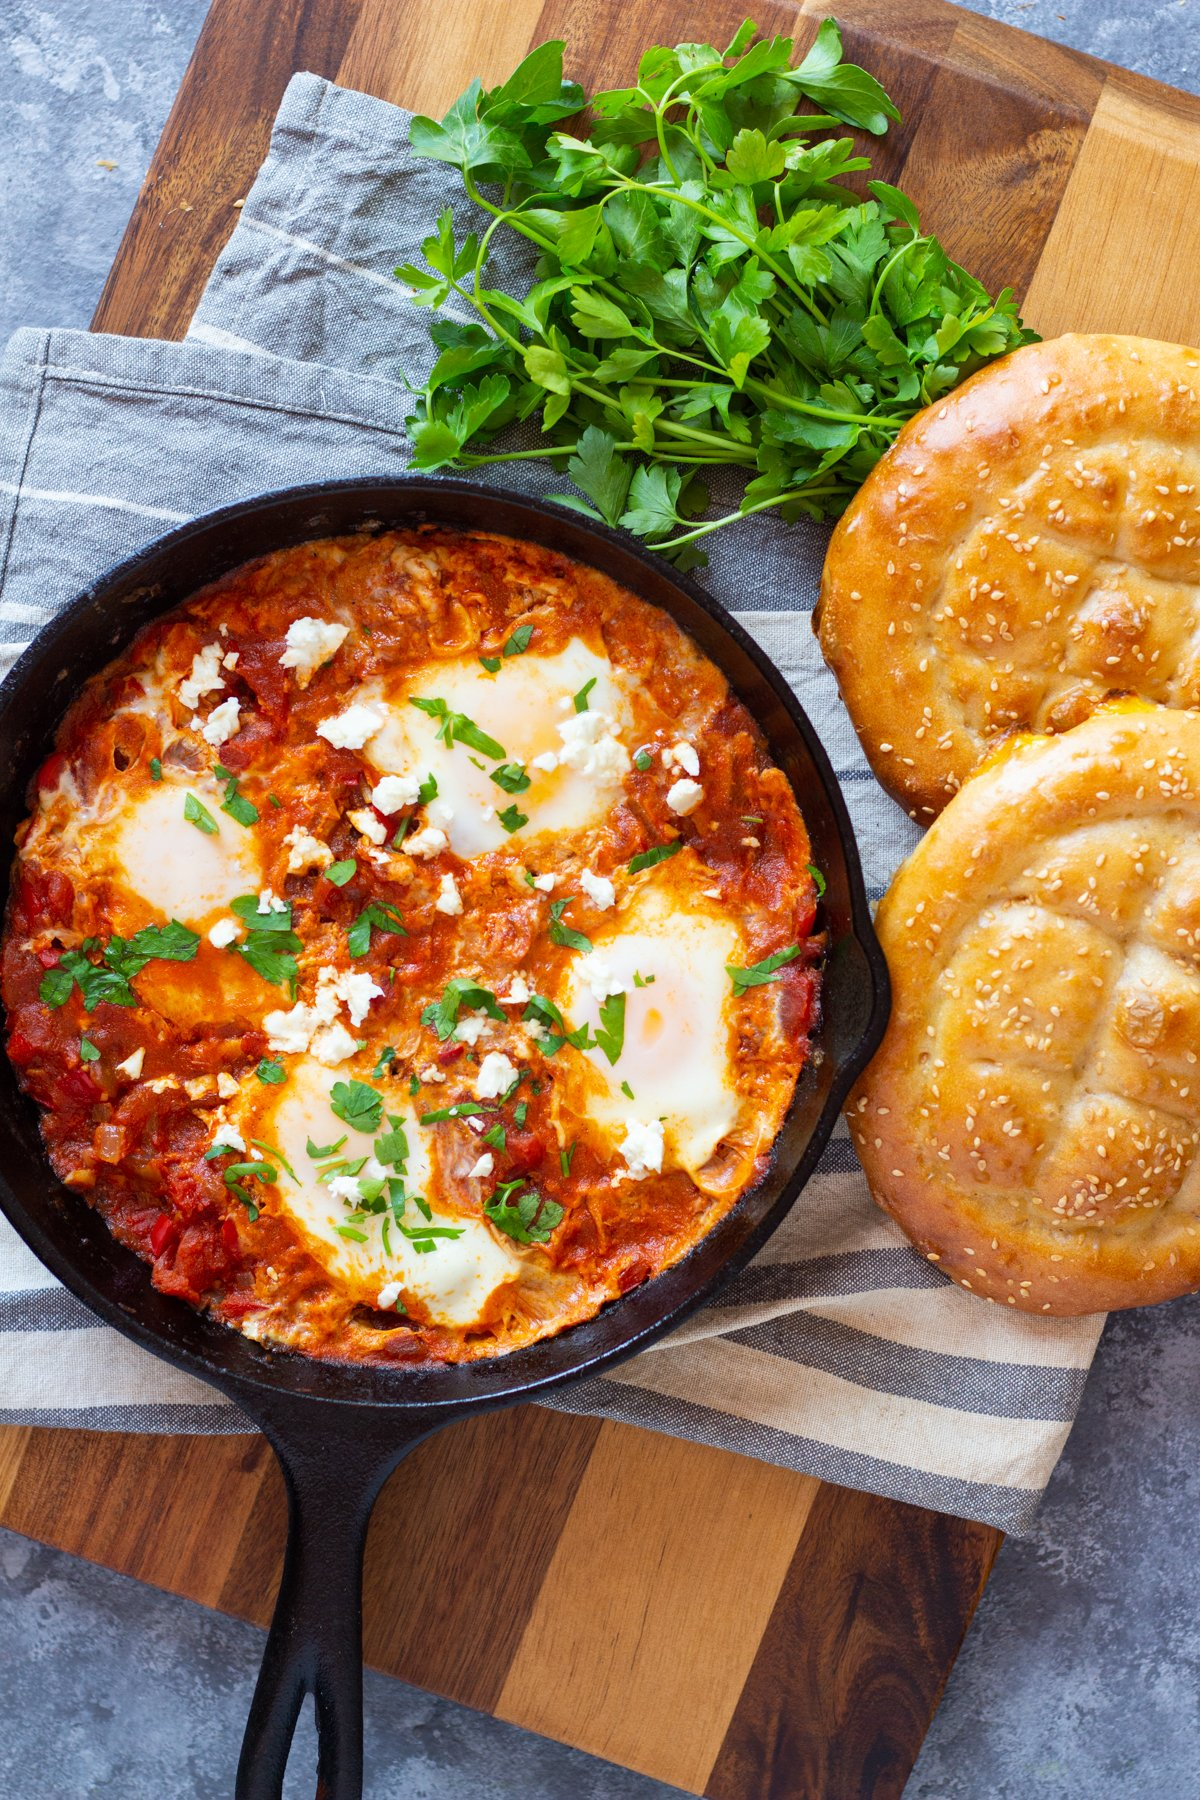 Overhead shot of the poached eggs in tomato sauce in a pan with bread and parsley.